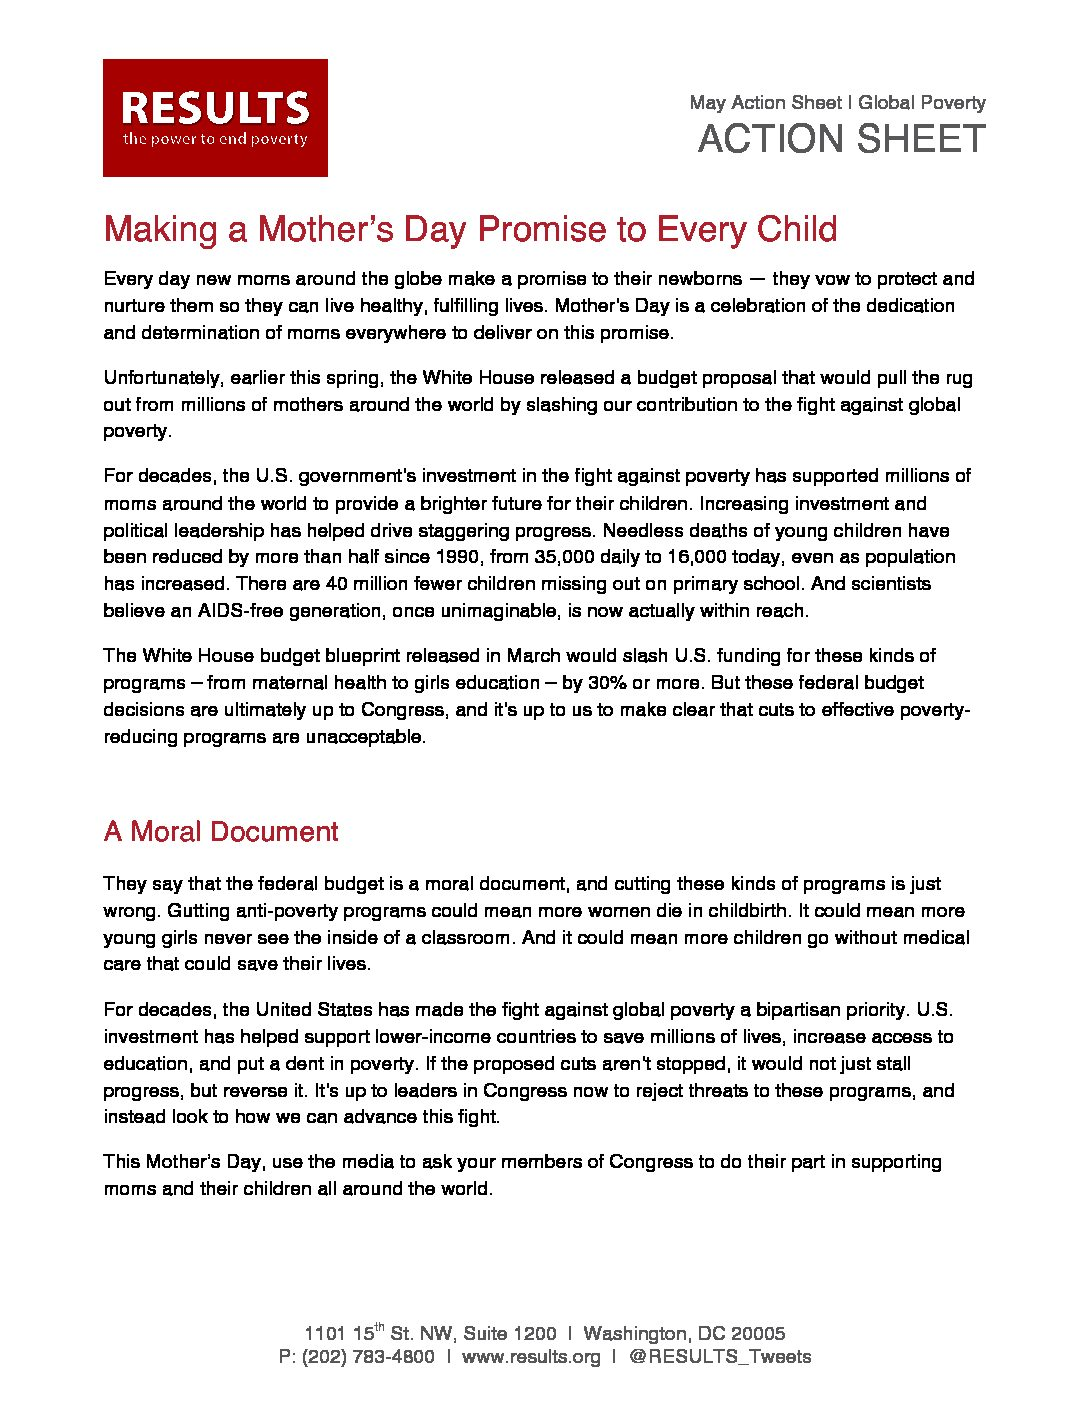 May Action Sheet Mothers Day LTE